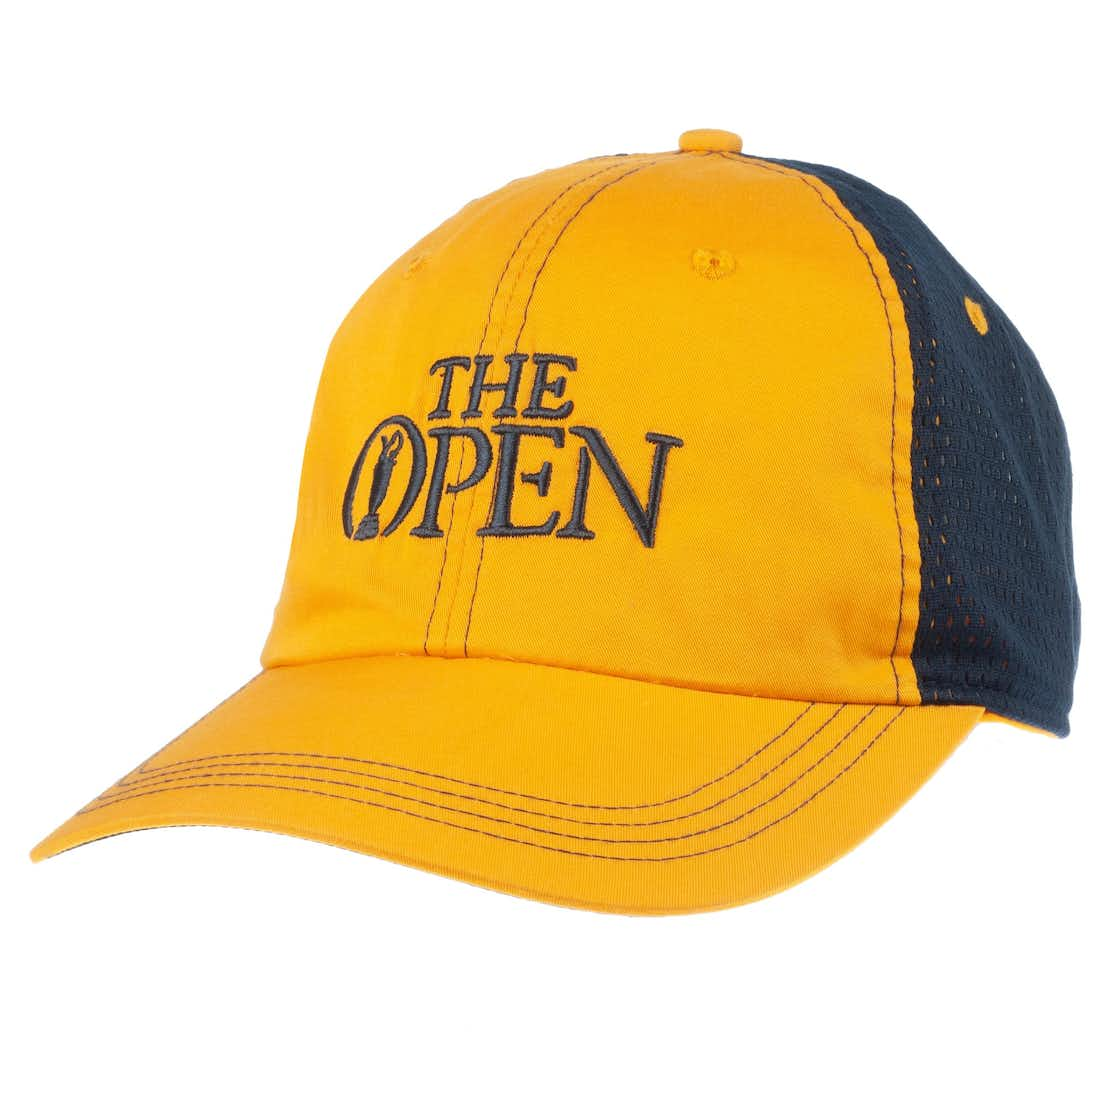 The Open Baseball Cap - Yellow